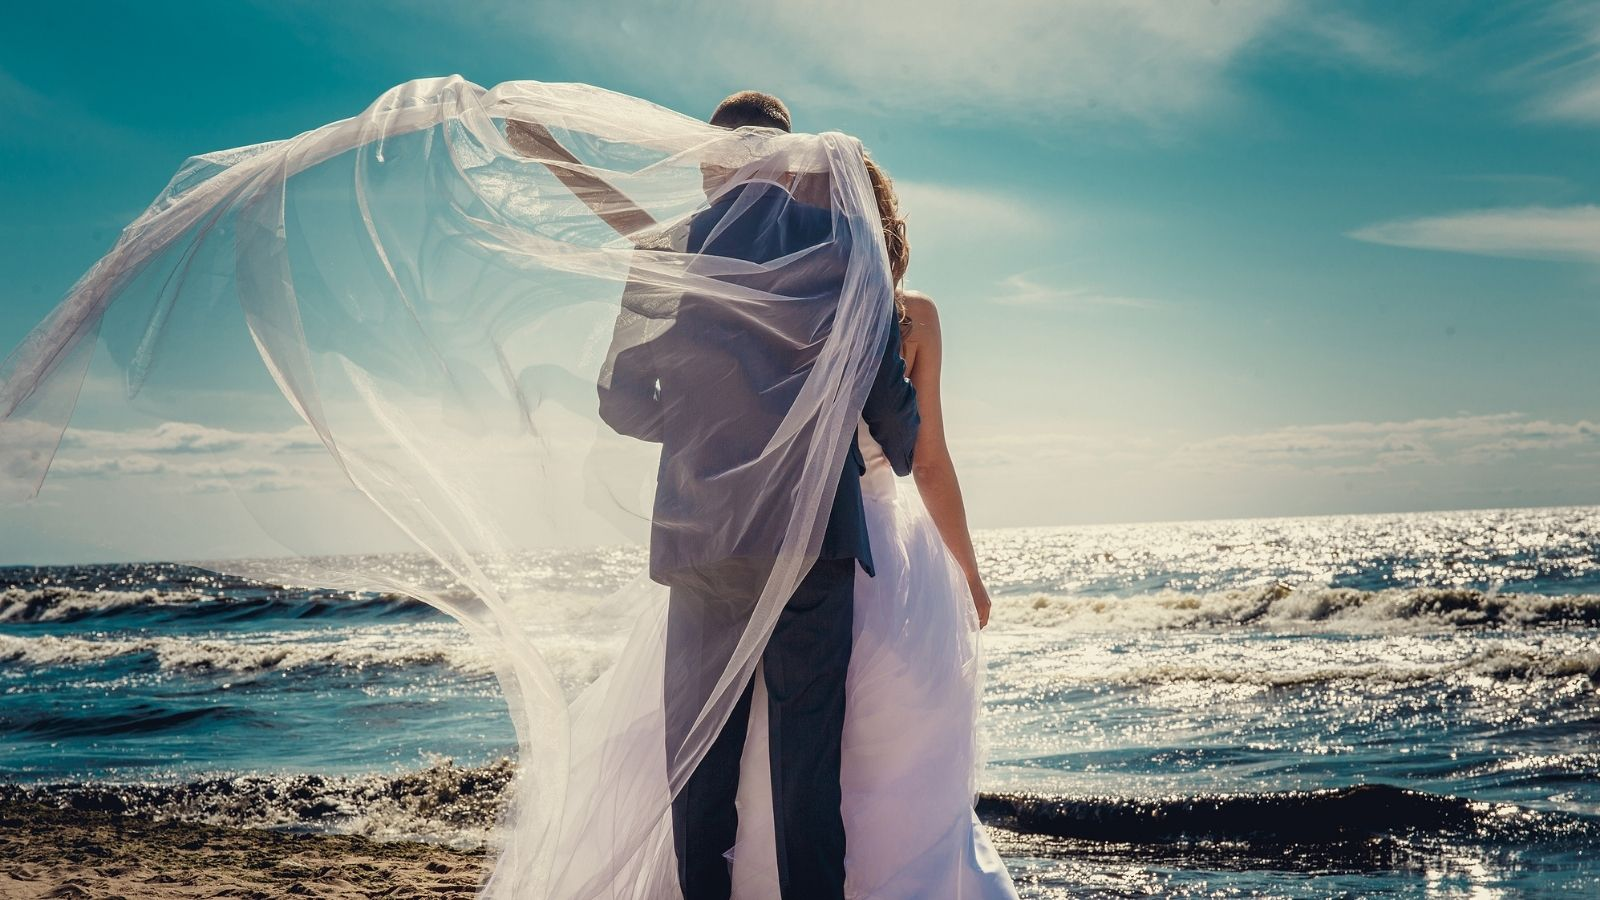 Divorce Rates are NOT What You Think They Are - Shaunti Feldhahn